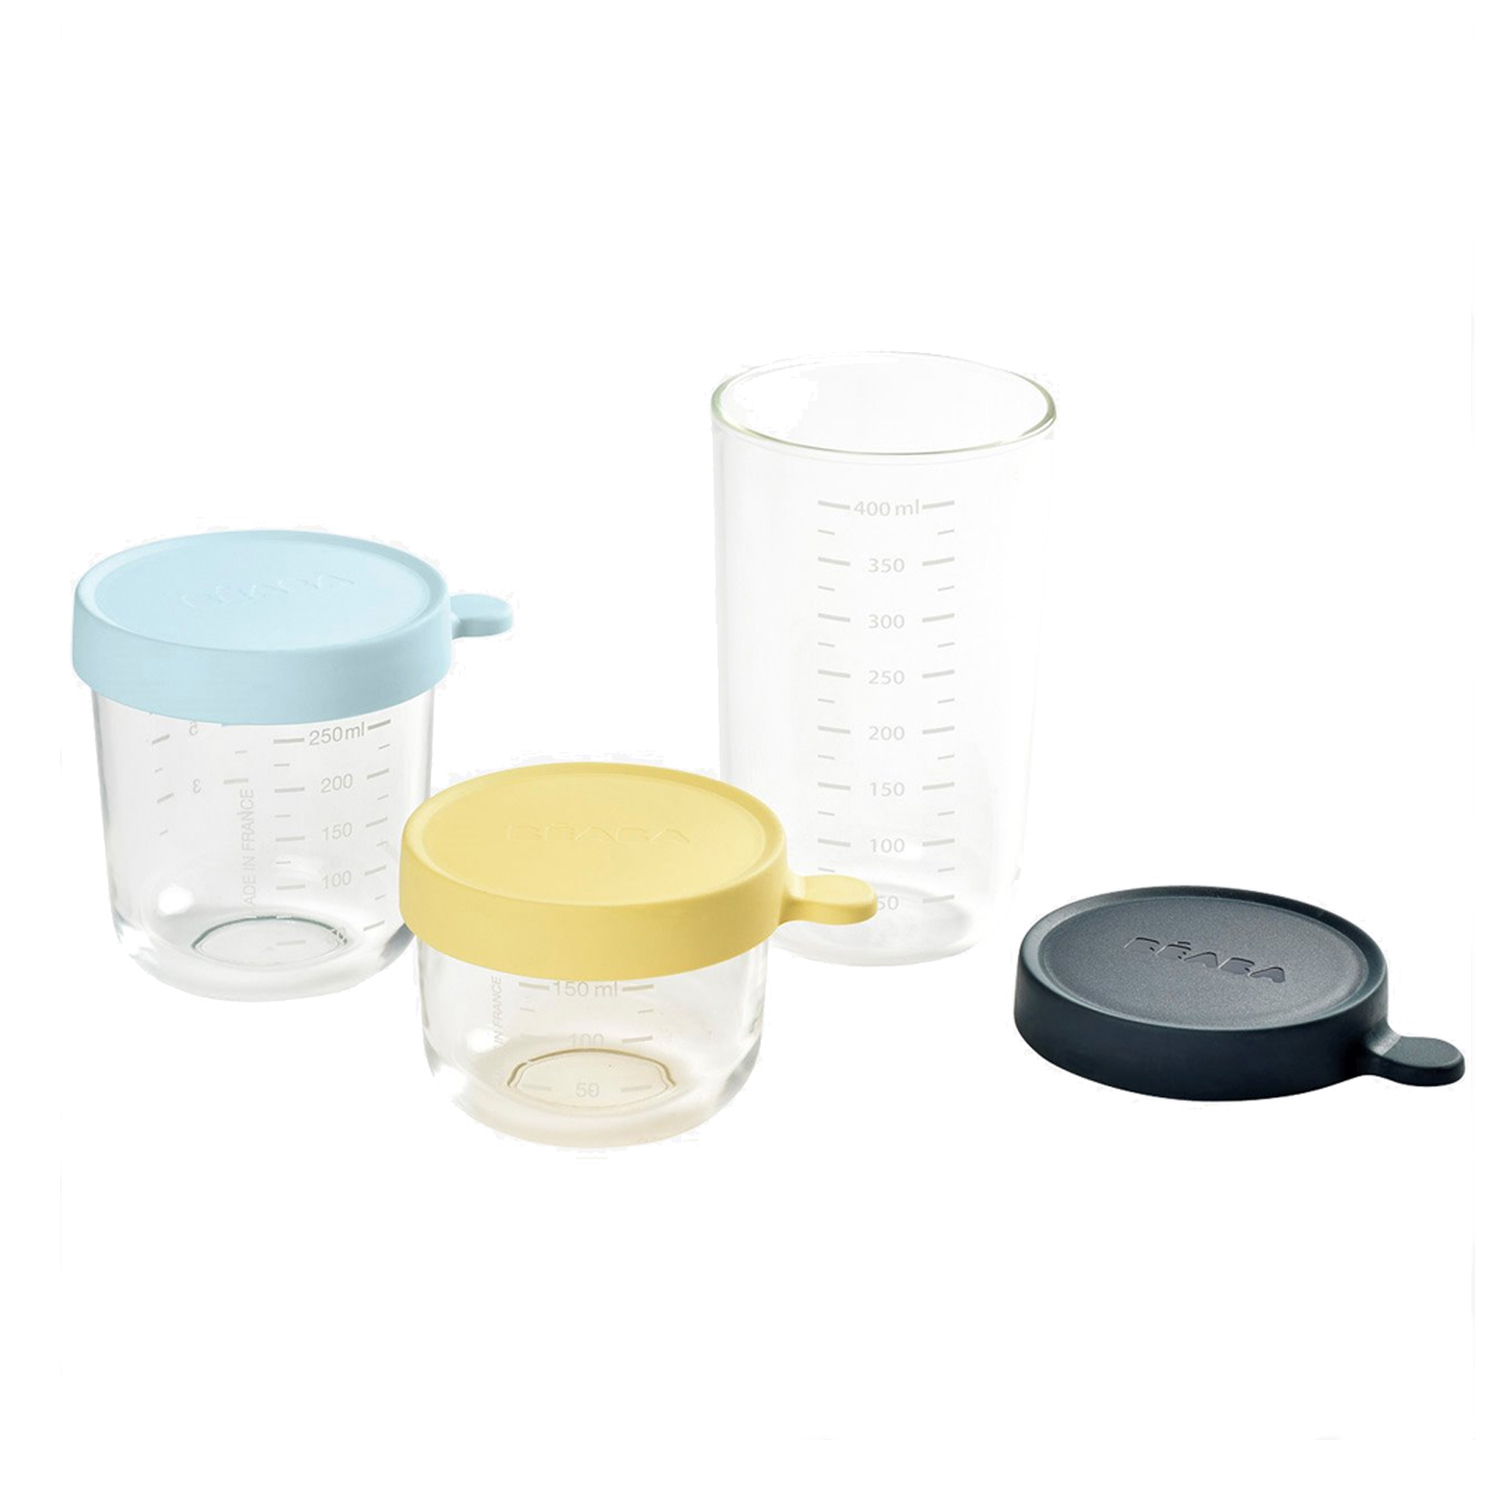 Coffret 3 portions verre   150-250-400 ml de Béaba